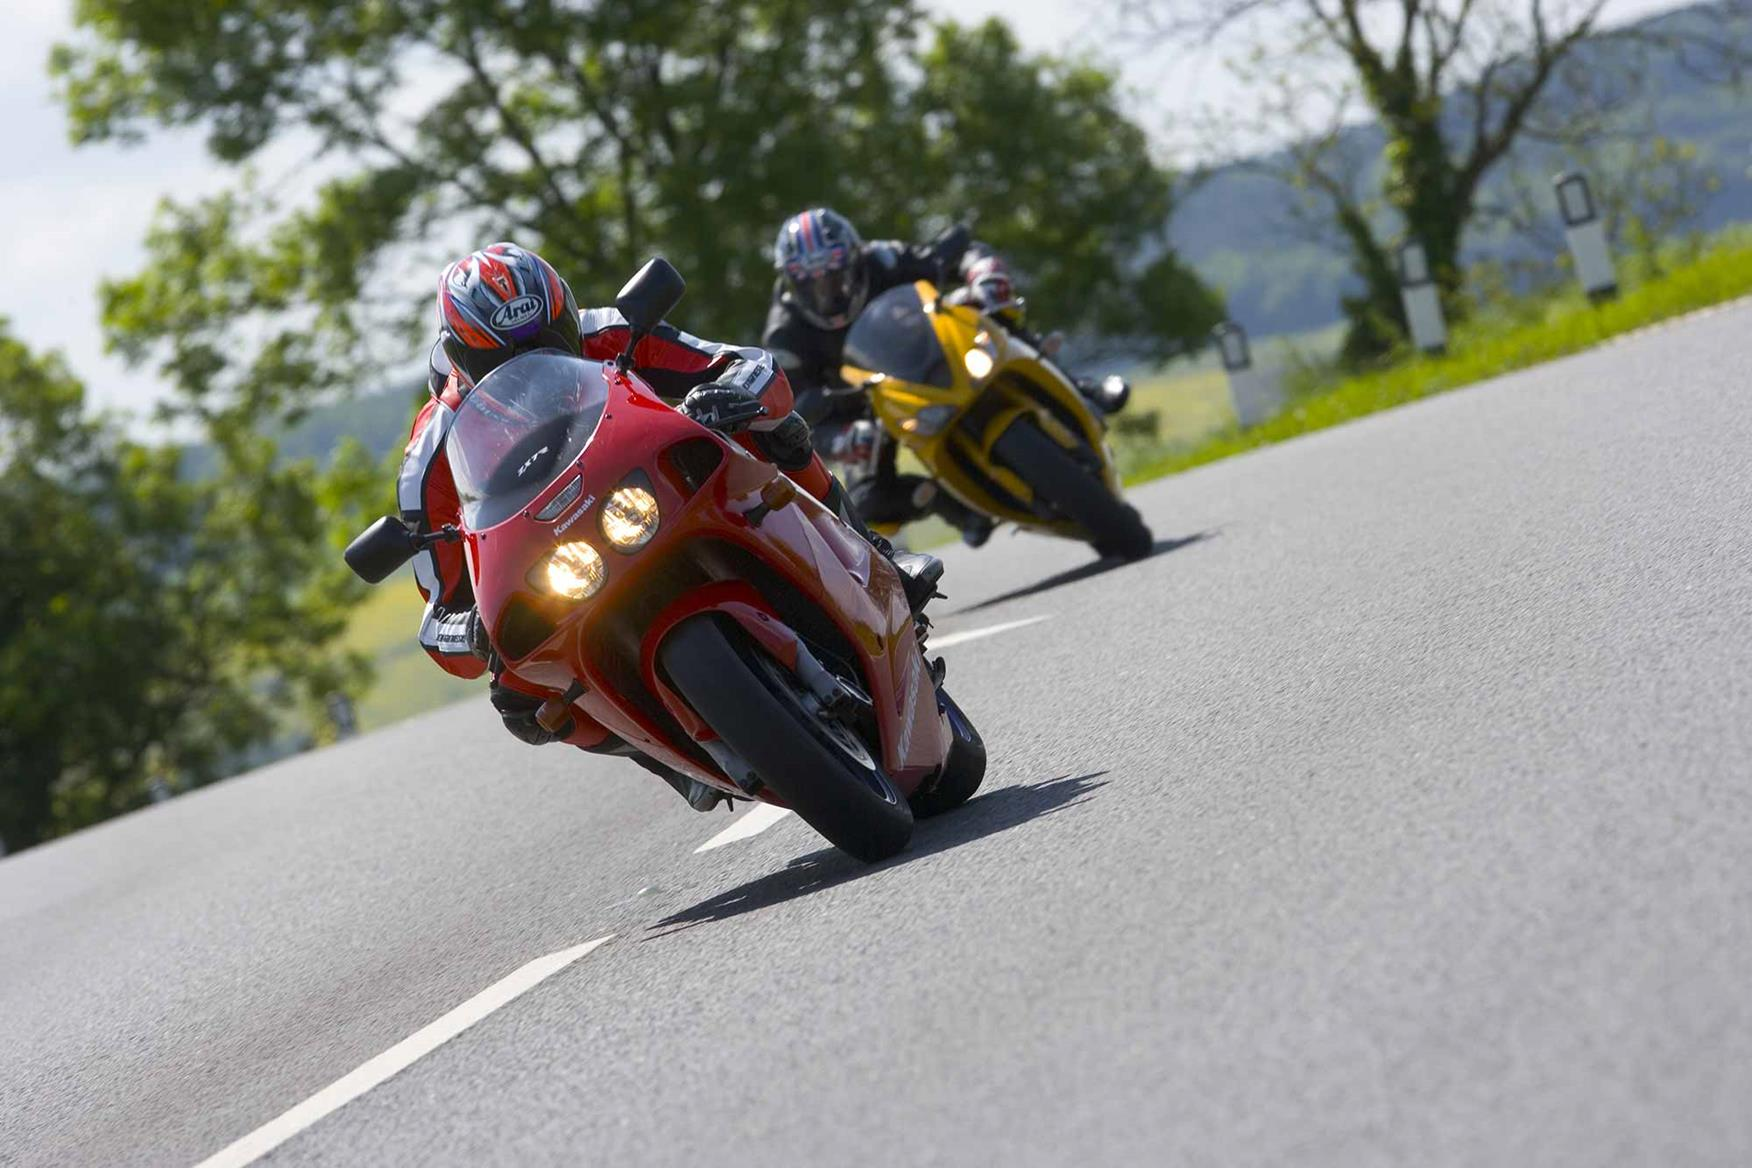 Kawasaki ZX-7R pursued by a Triumph Daytona 675